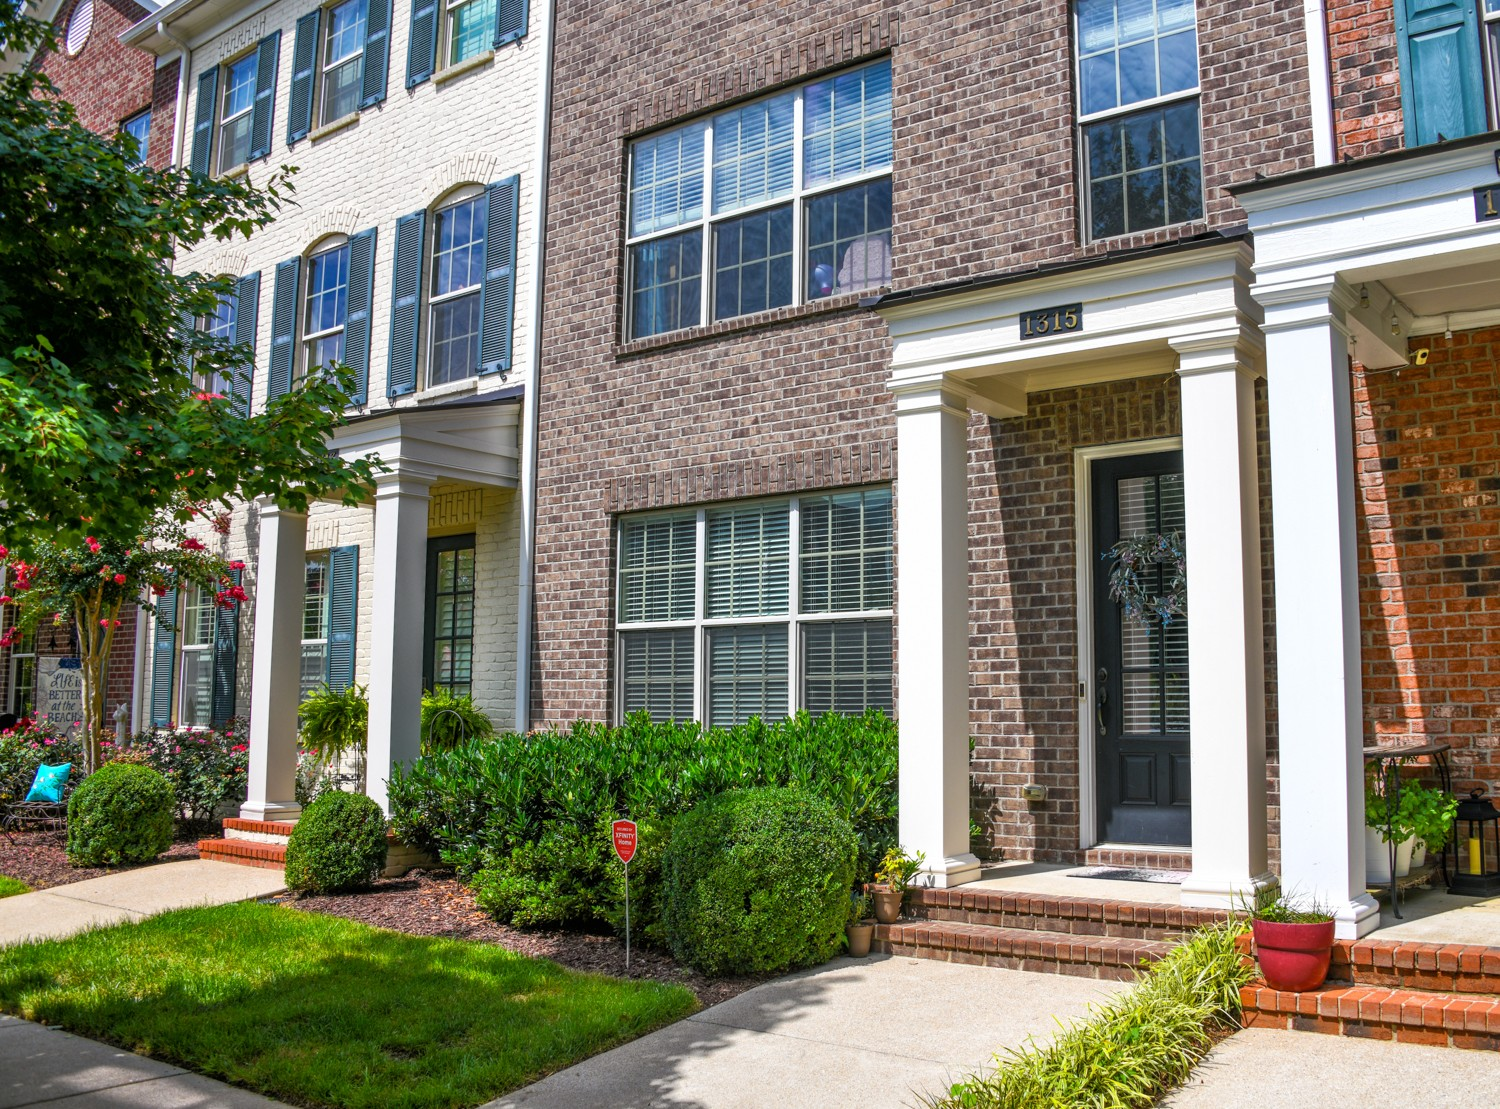 "AWESOME town home is highly sought Gateway Village. CONVENIENCE, AFFORDABLE AND WILLIAMSON COUNTY!!! Property is being sold ""as is"" by SIRVA Relocation, LLC. All offers must be submitted on seller forms.  Download forms from listing. ""Financing Incentives"" are available from SIRVA Mortgage Inc. including reduced rates, reduced closing costs and no-cost pre-qualification. Neither the use of SIRVA Mortgage, Inc. nor SIRVA Settlement, Inc. are a condition for buying this property."